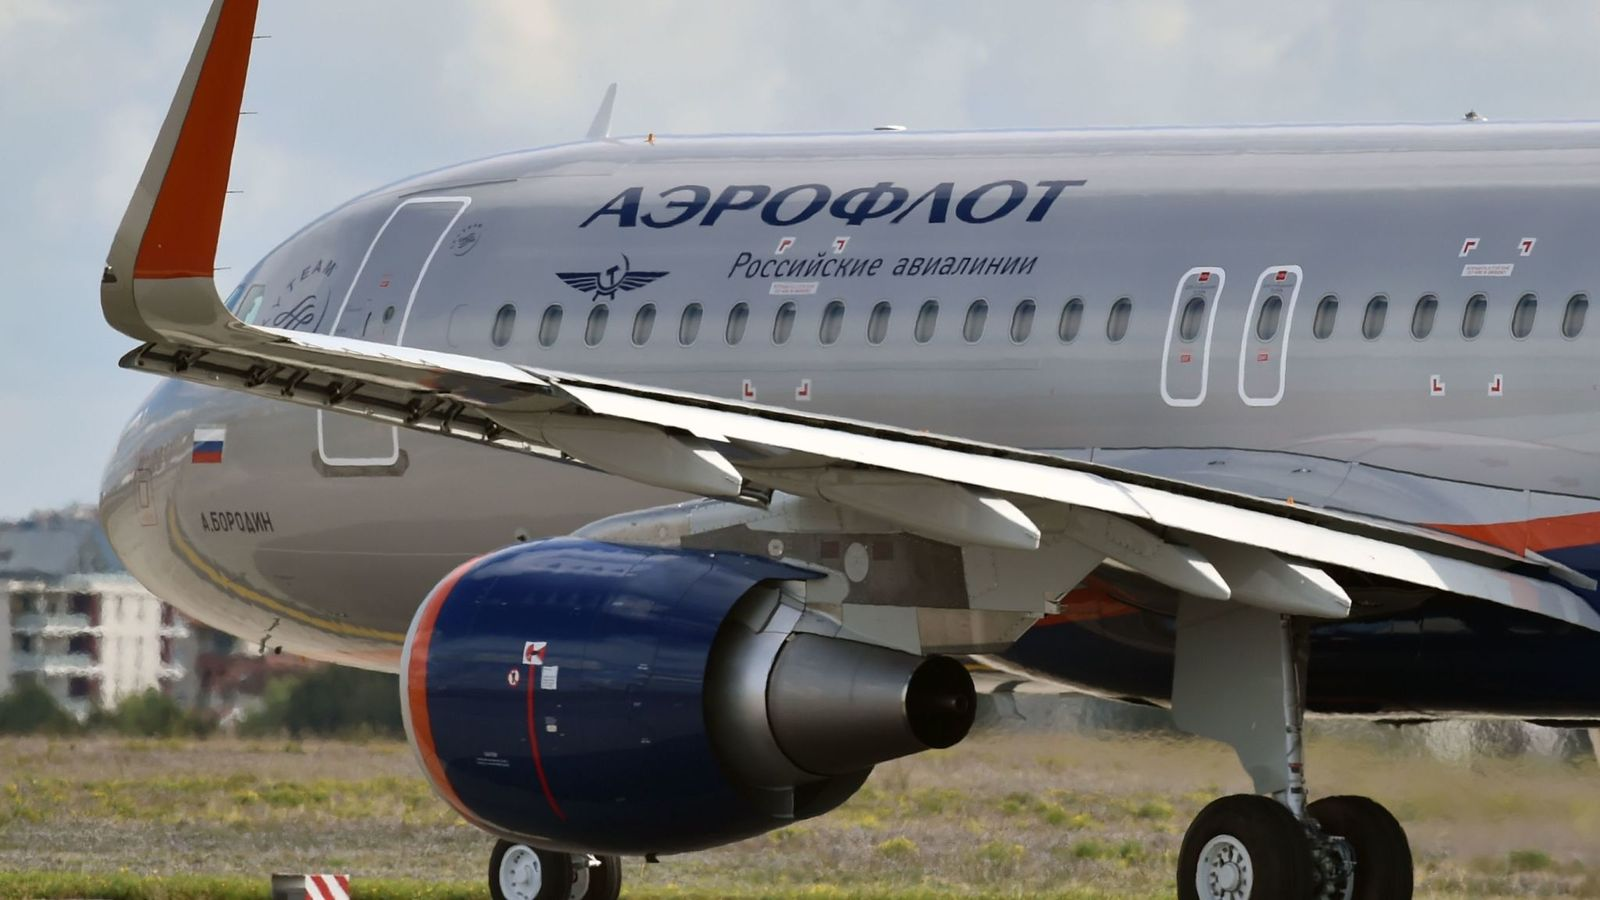 'Drunk passenger' attempts to hijack Aeroflot plane and demands flight to Afghanistan